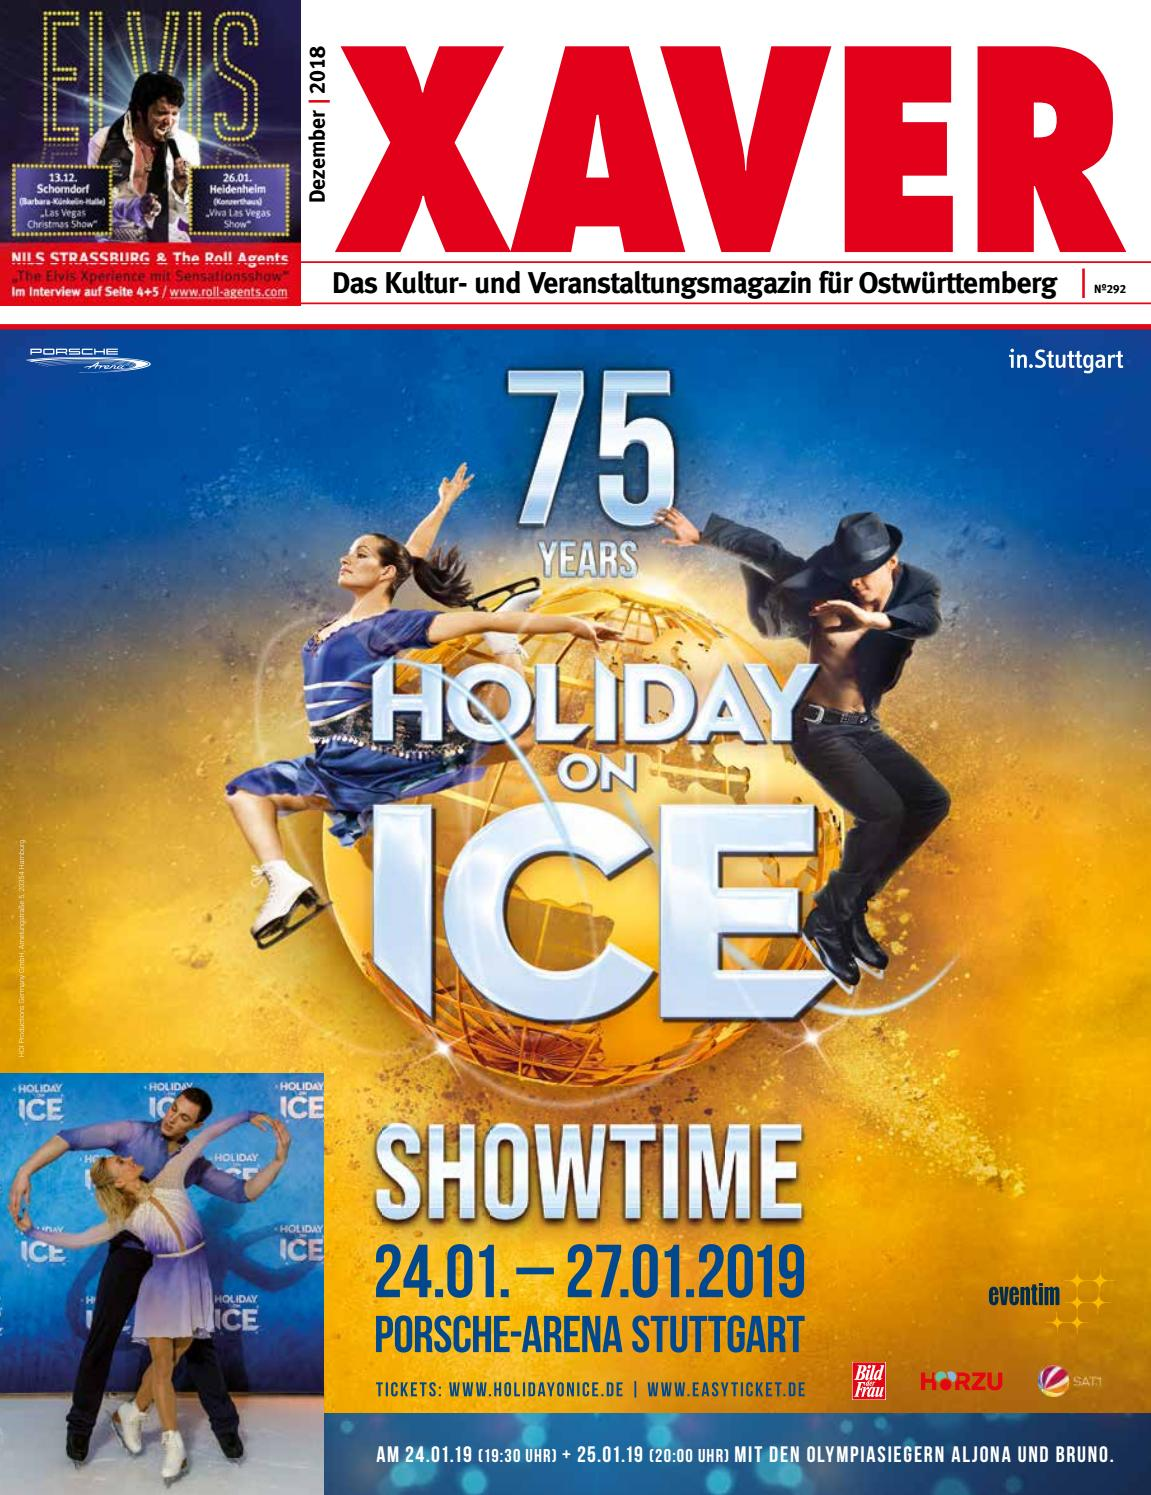 XAVER_12_18 by Hariolf Erhardt issuu